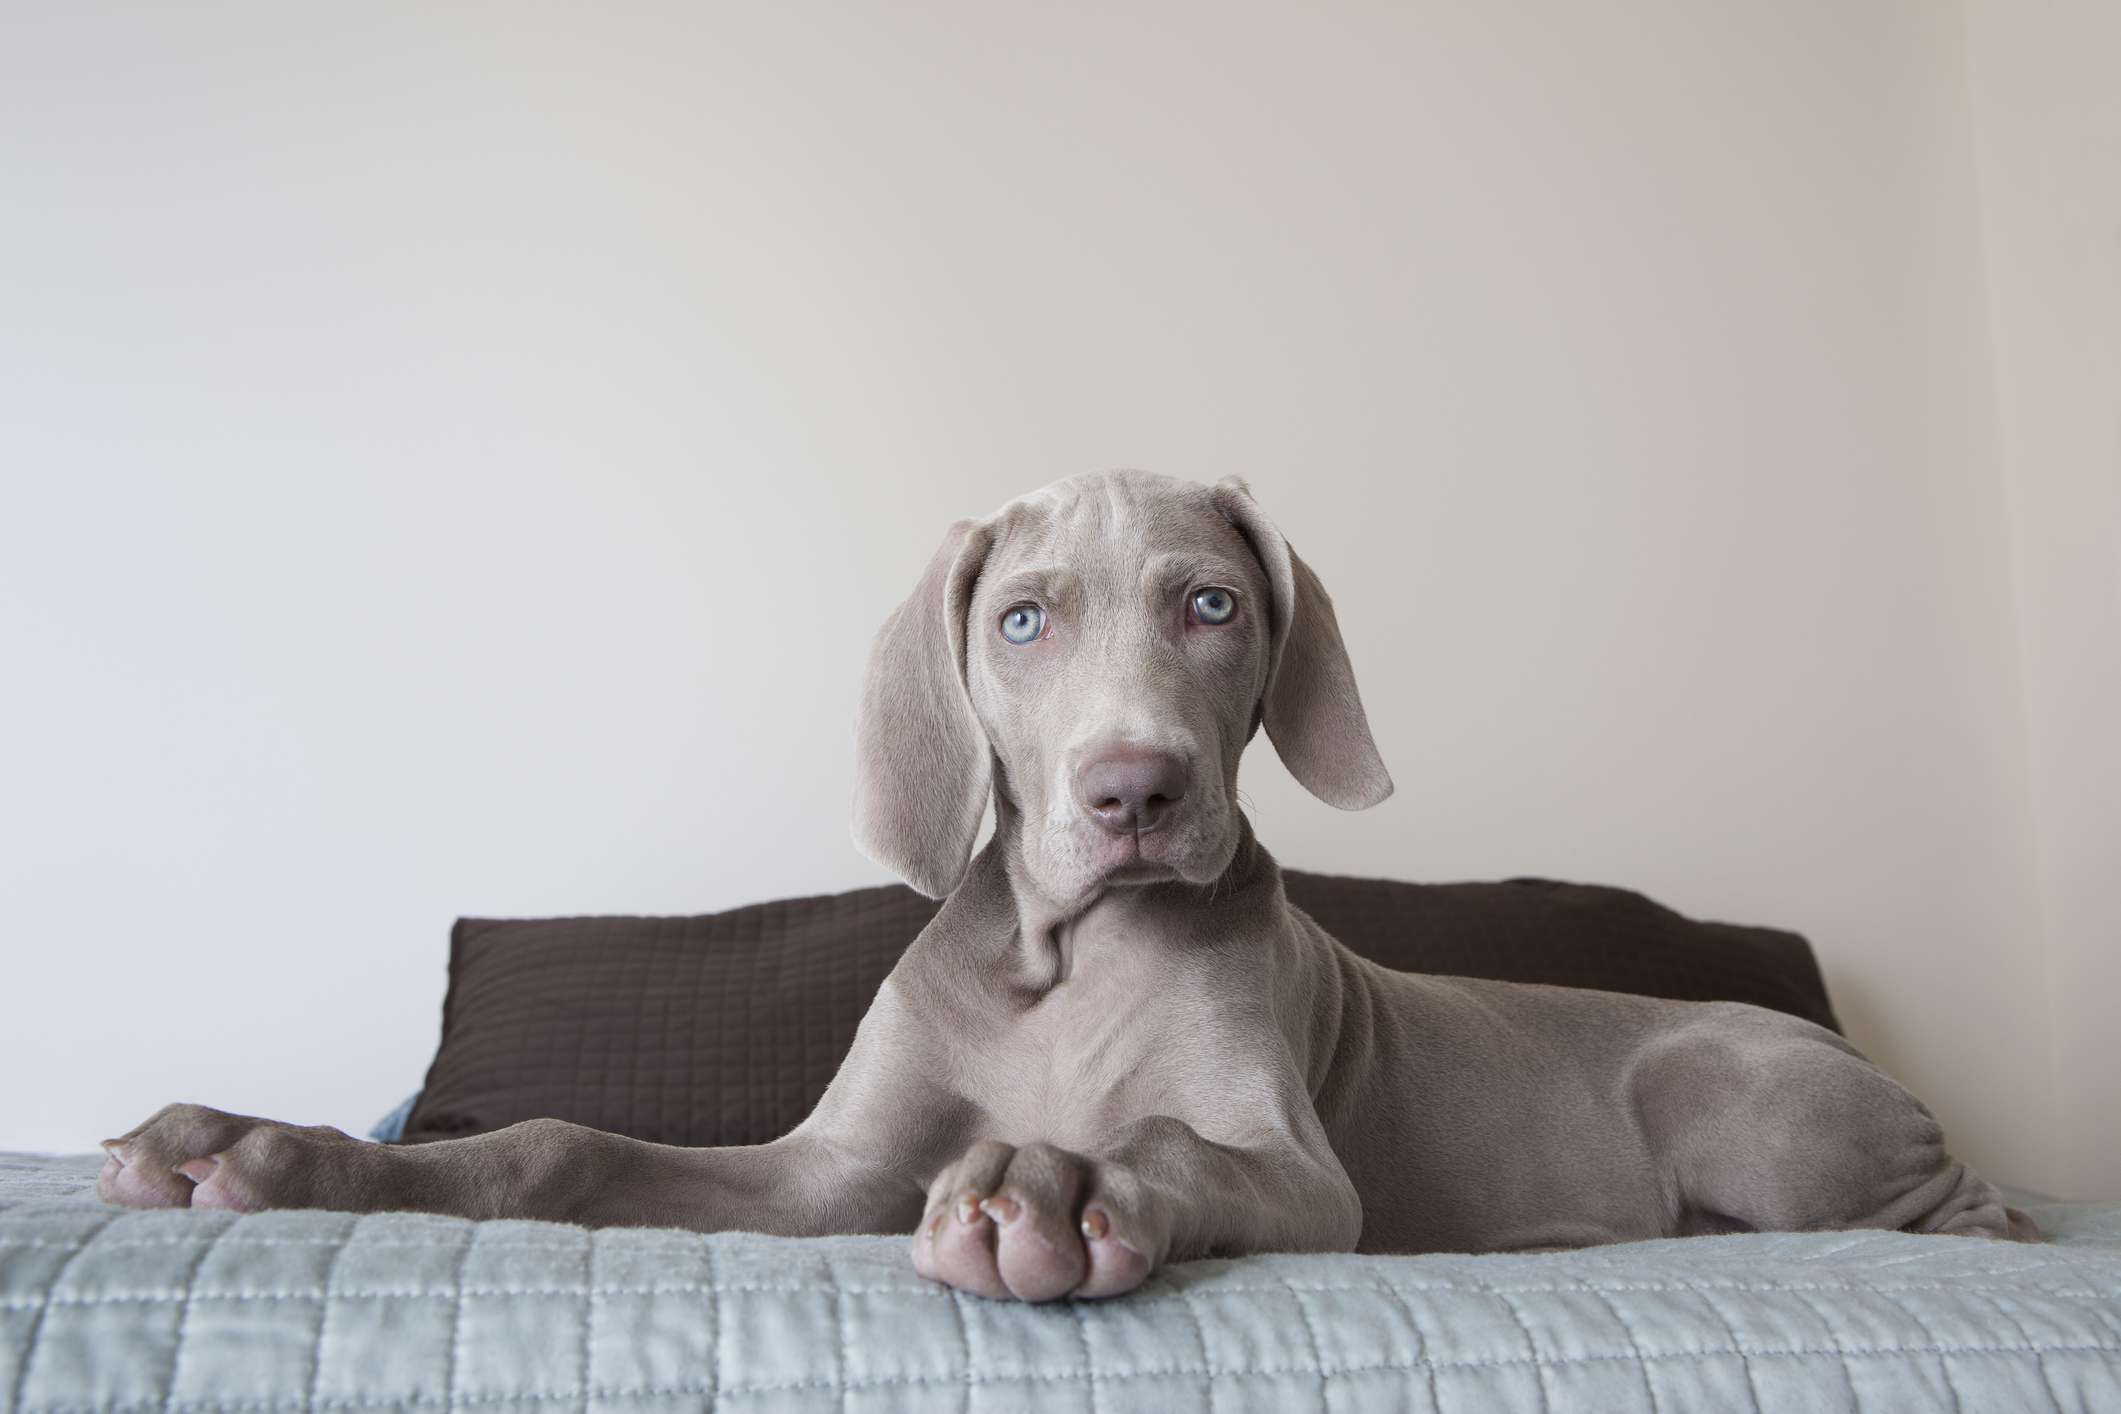 Gray Weimaraner with blue eyes on bed looking at camera.